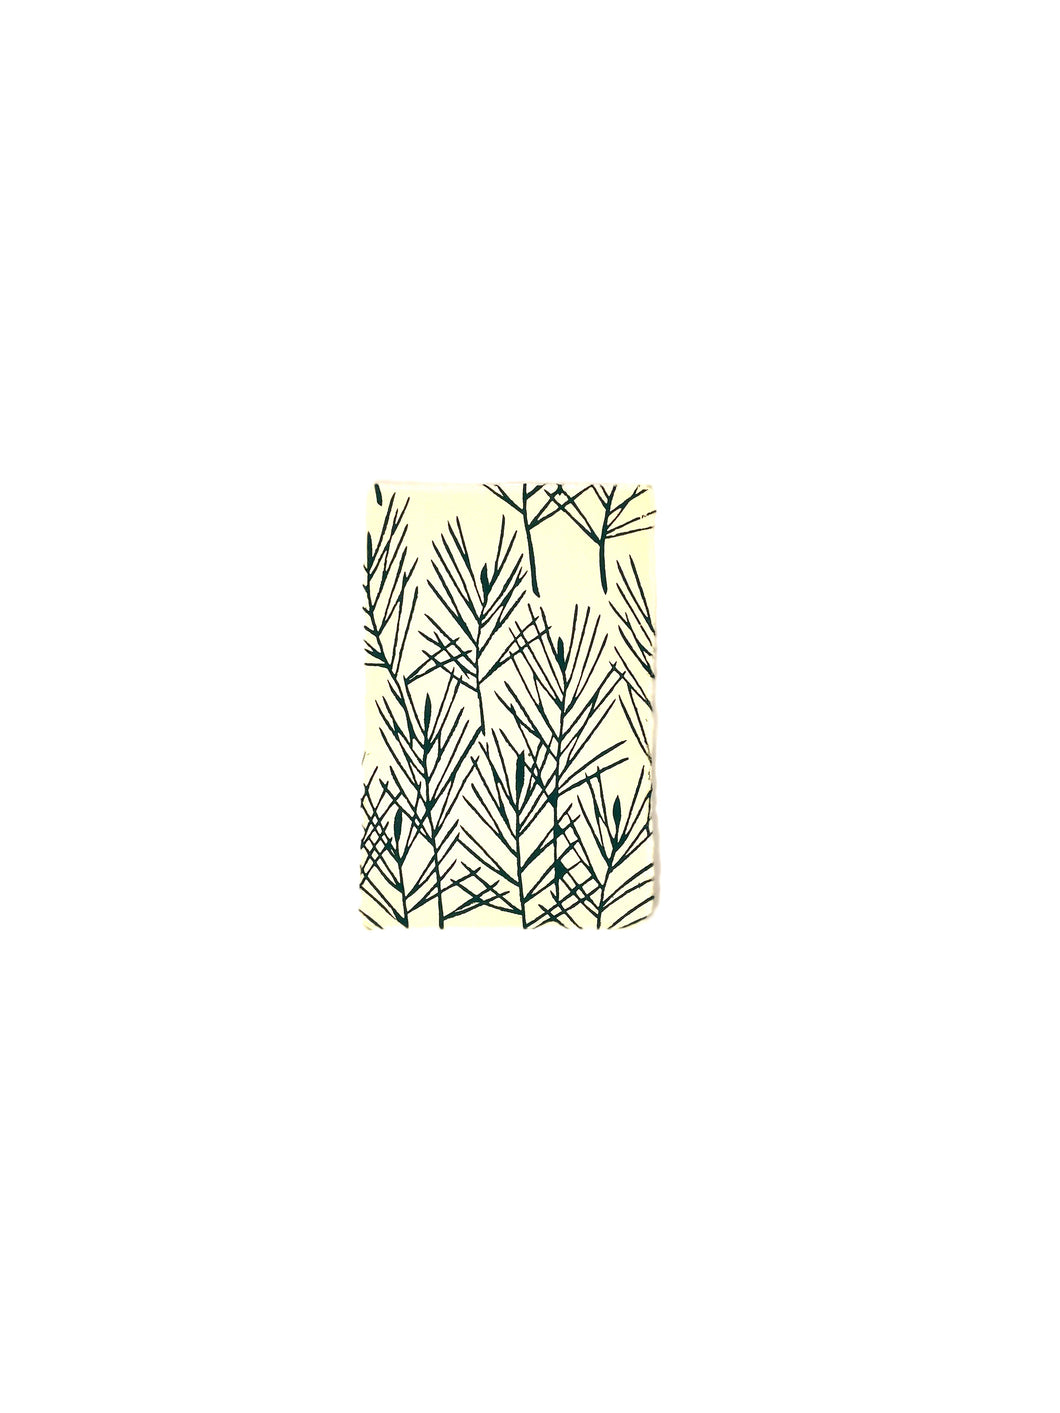 Japanese Washi Hand Printed Postcard Dark Green Pine - 和紙絵ハガキ 松/濃い草